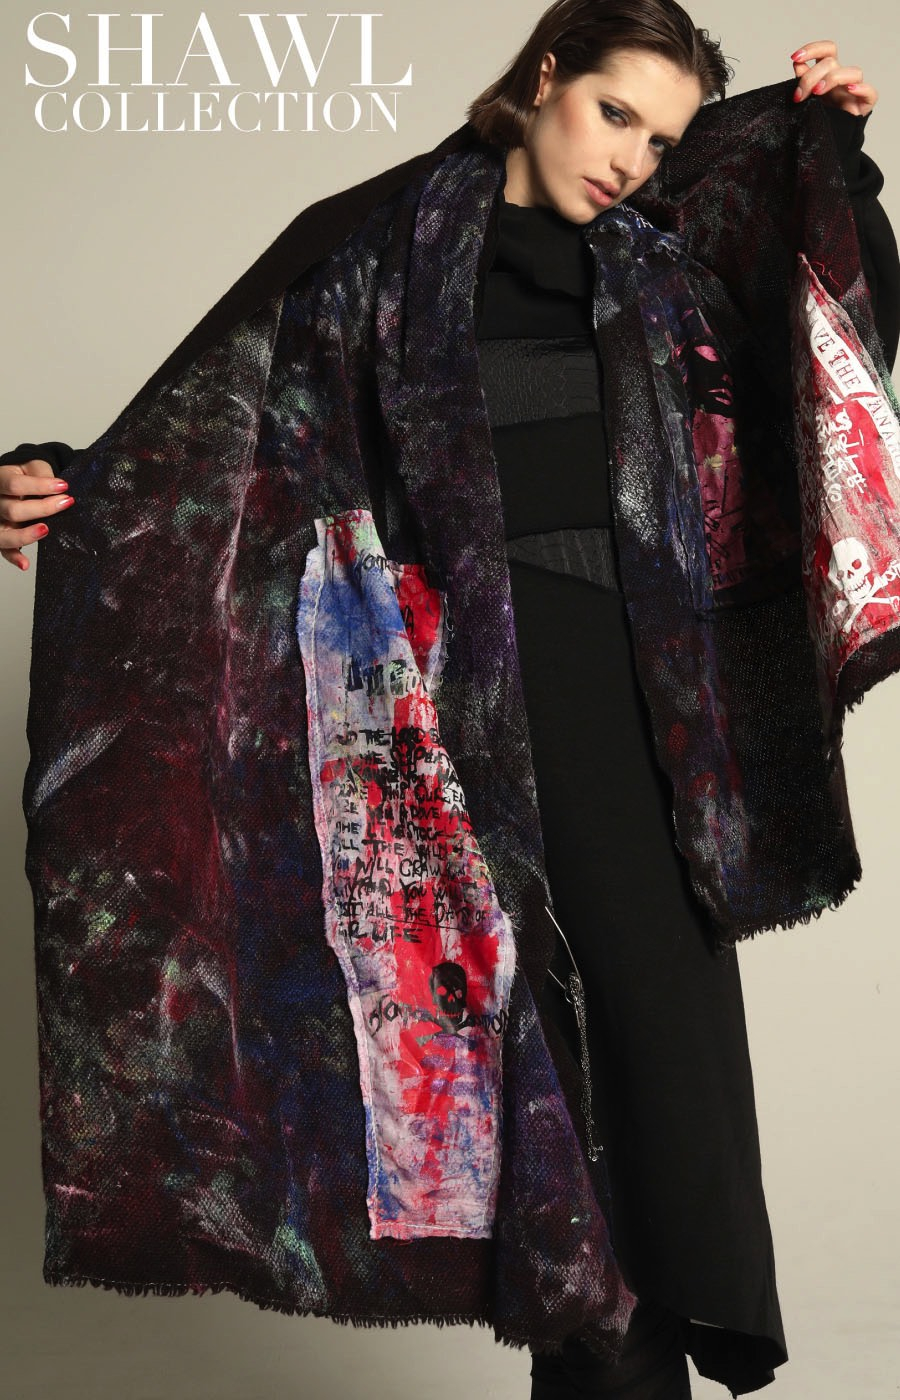 1015 SHAWL COLLECTION